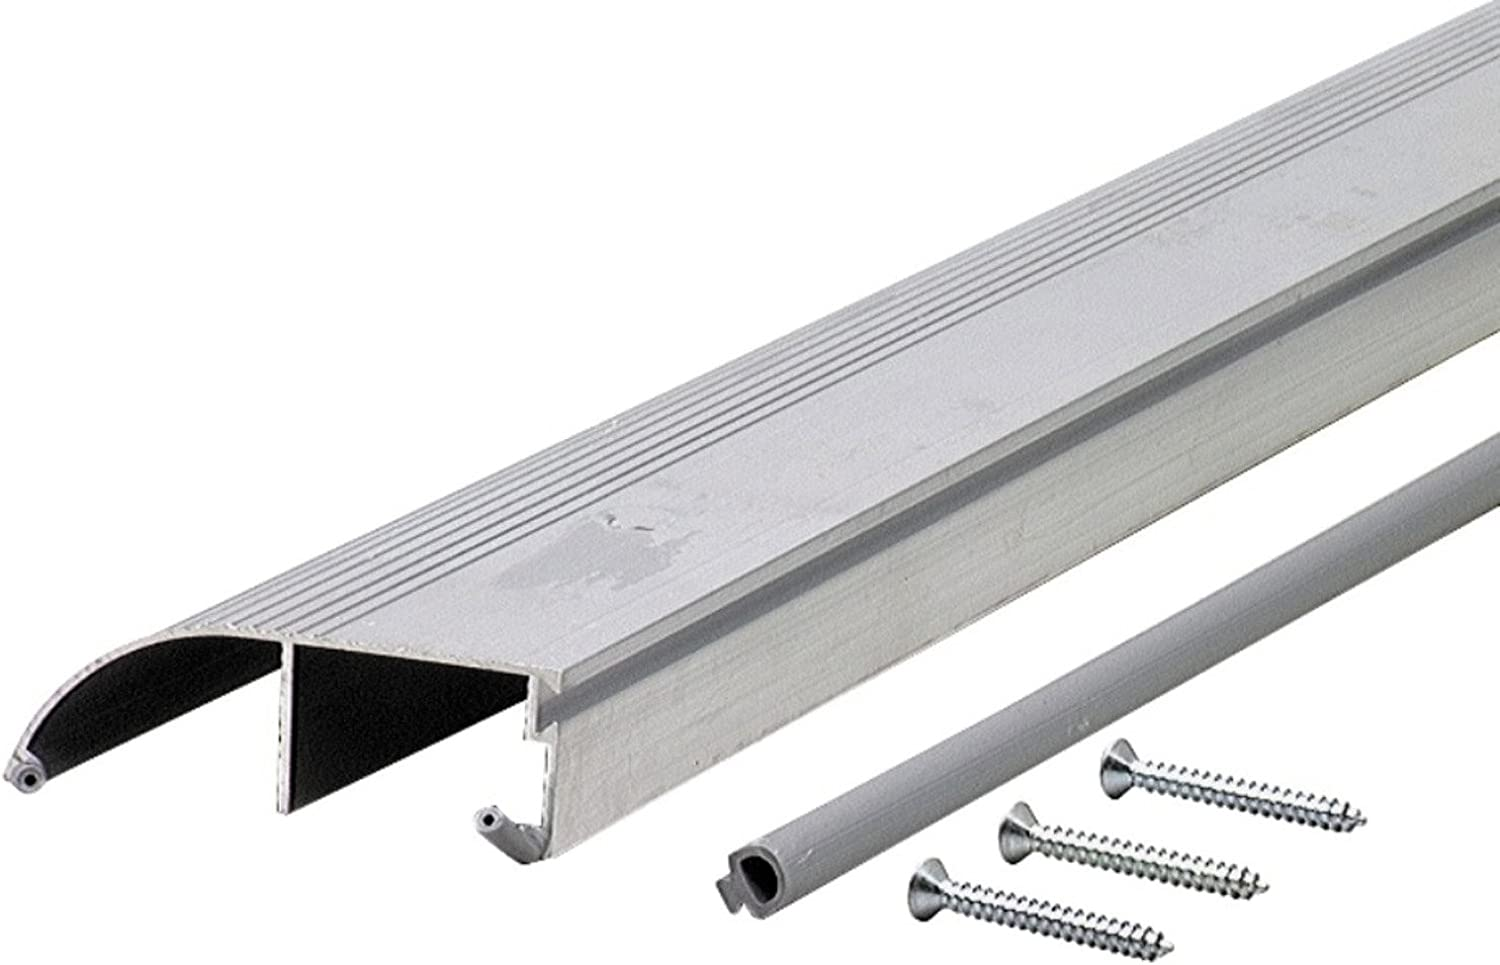 M-D Building Products 8631 1-Inch - 36-Inch High Bumper Threshold